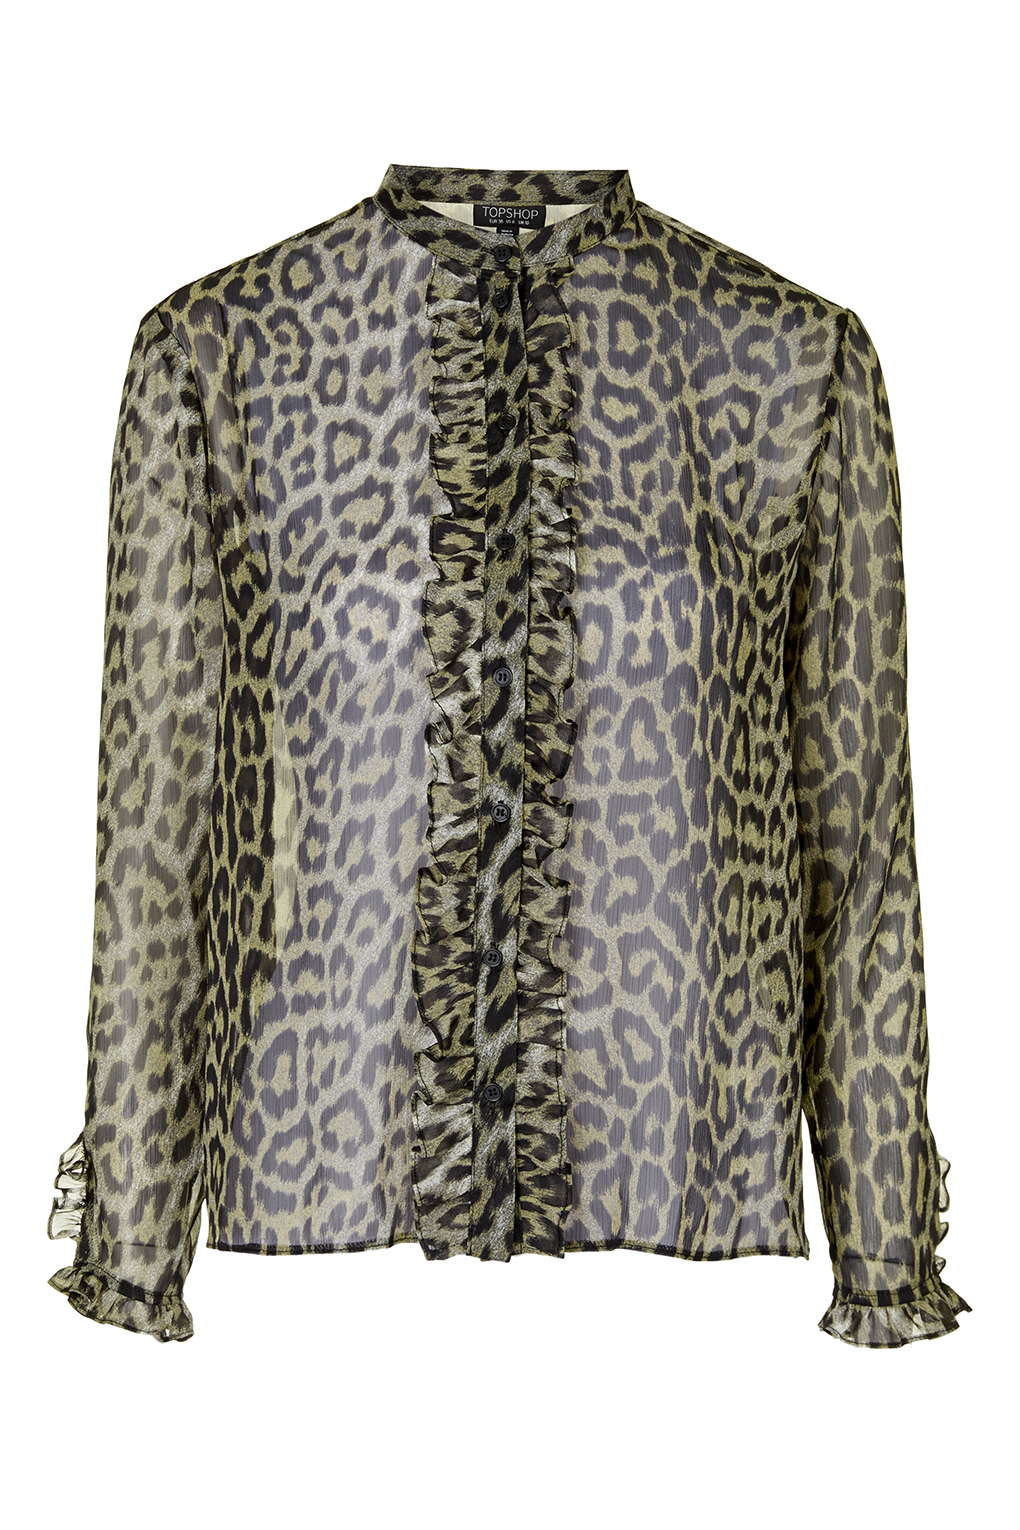 e6cad09a51281 Lyst - TOPSHOP Animal Print Ruffle Blouse in Brown